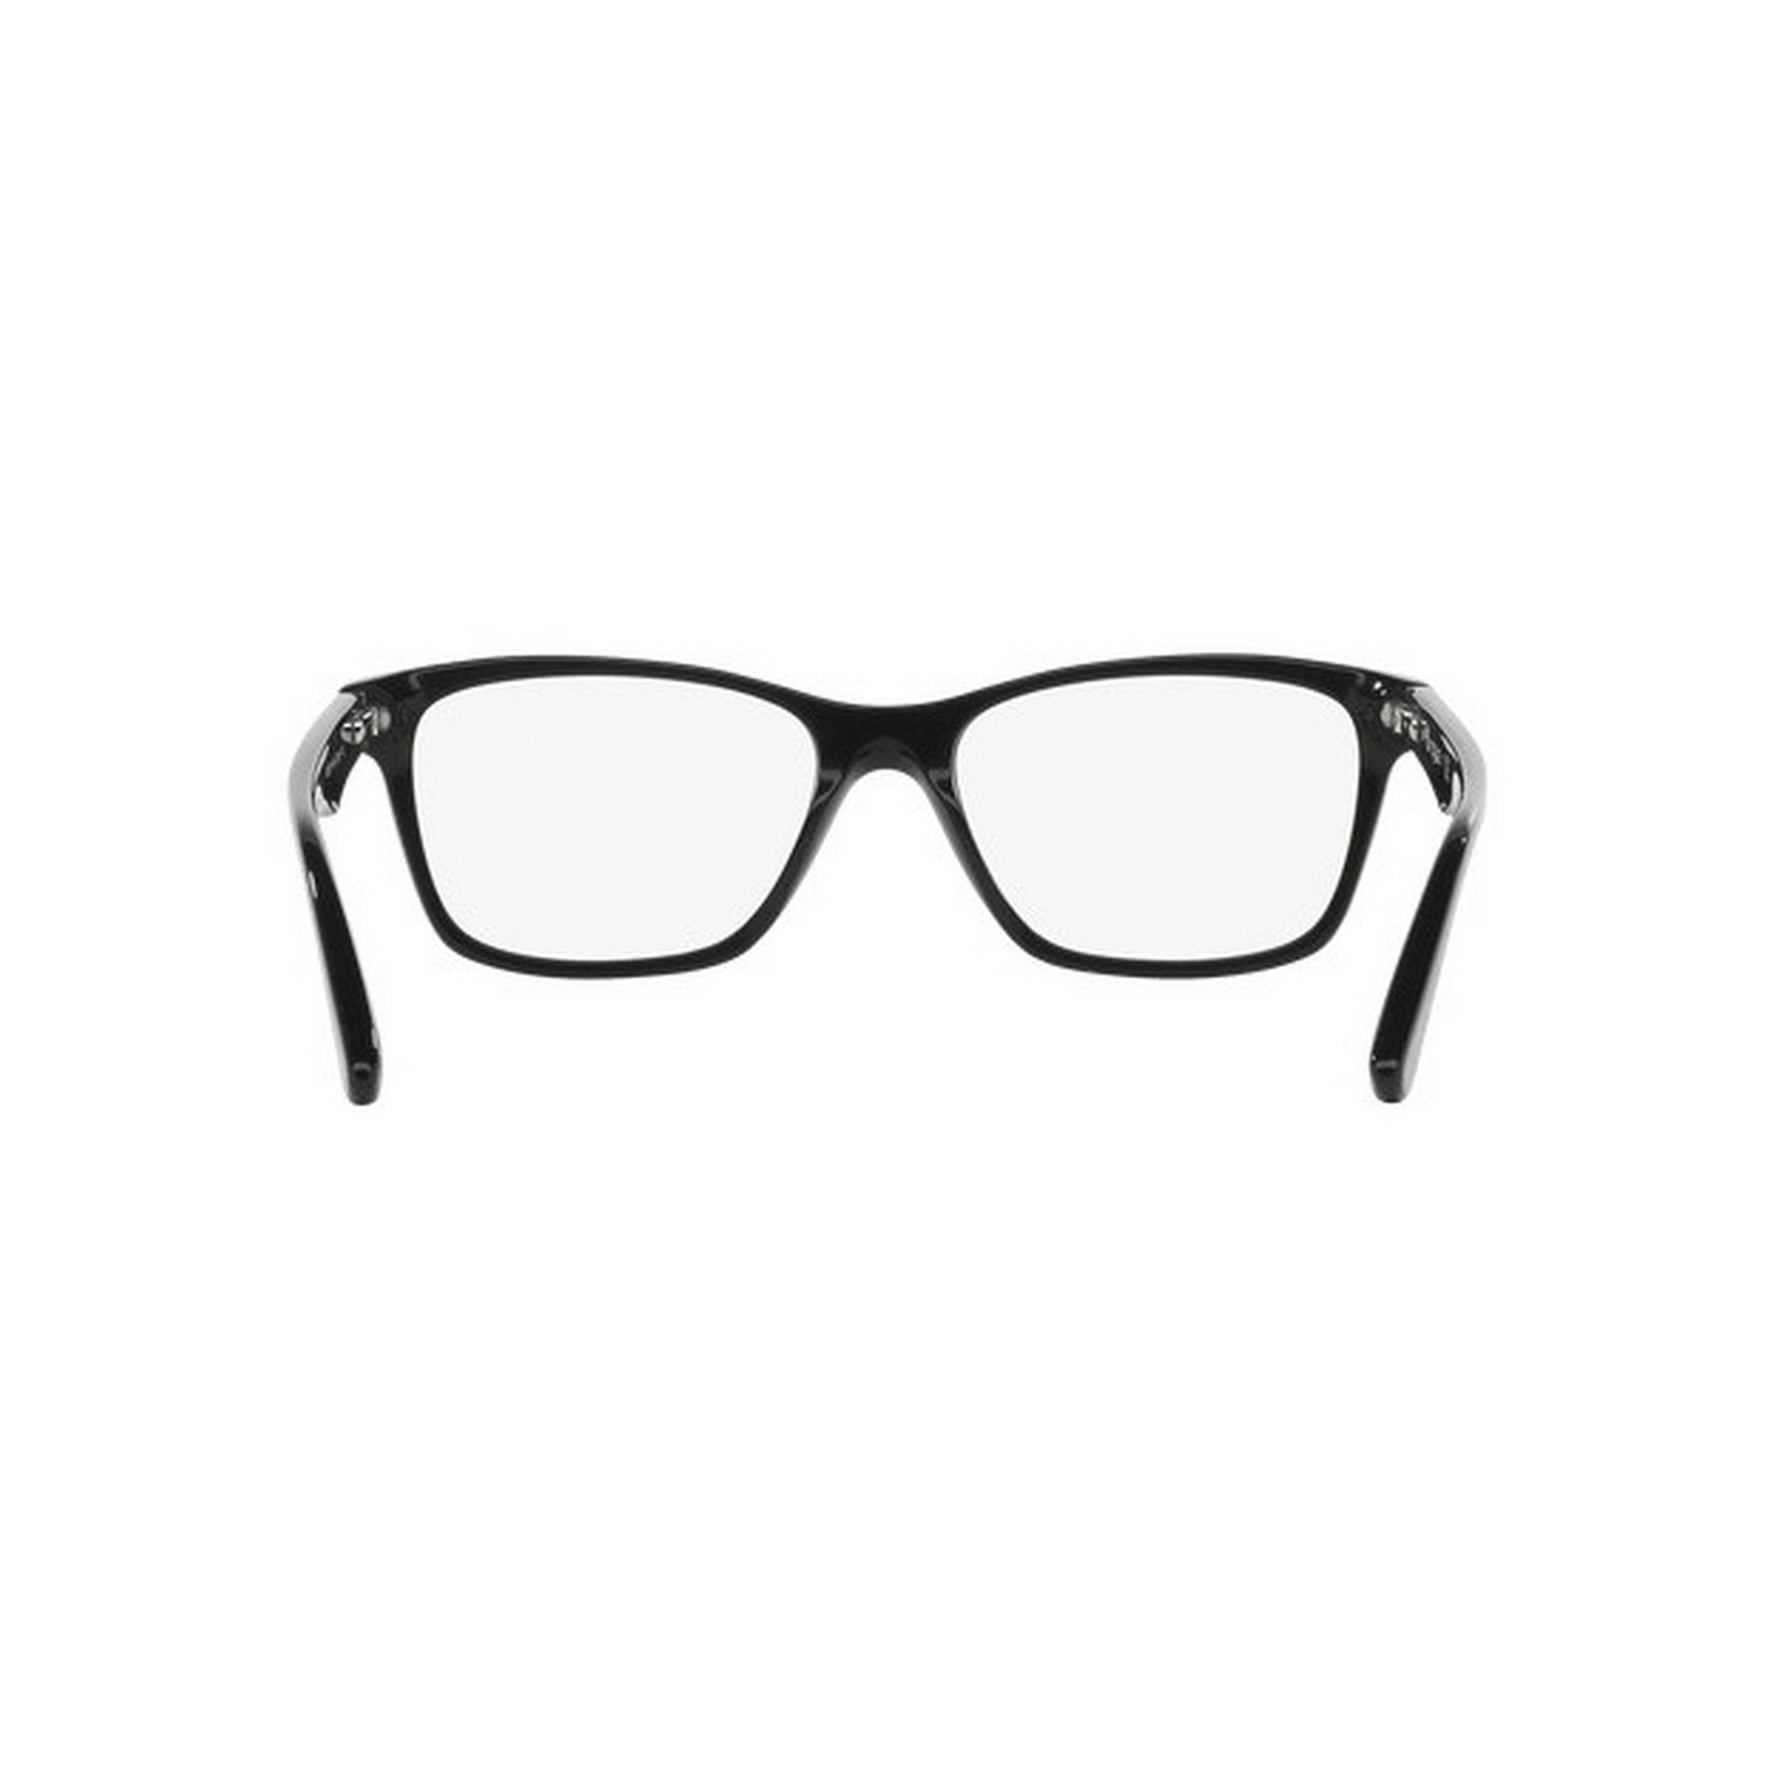 a3ee64d0b5 Shop Vogue Women s VO2787 W44 51 Square Plastic Black Clear Eyeglasses -  Free Shipping Today - Overstock.com - 14779051